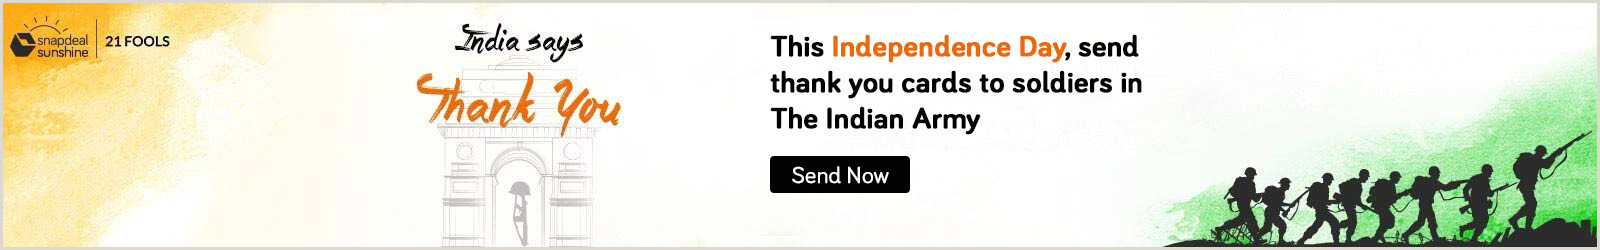 Business Cards India Celebrate 72 Years Of Independence Send Thank You Cards To